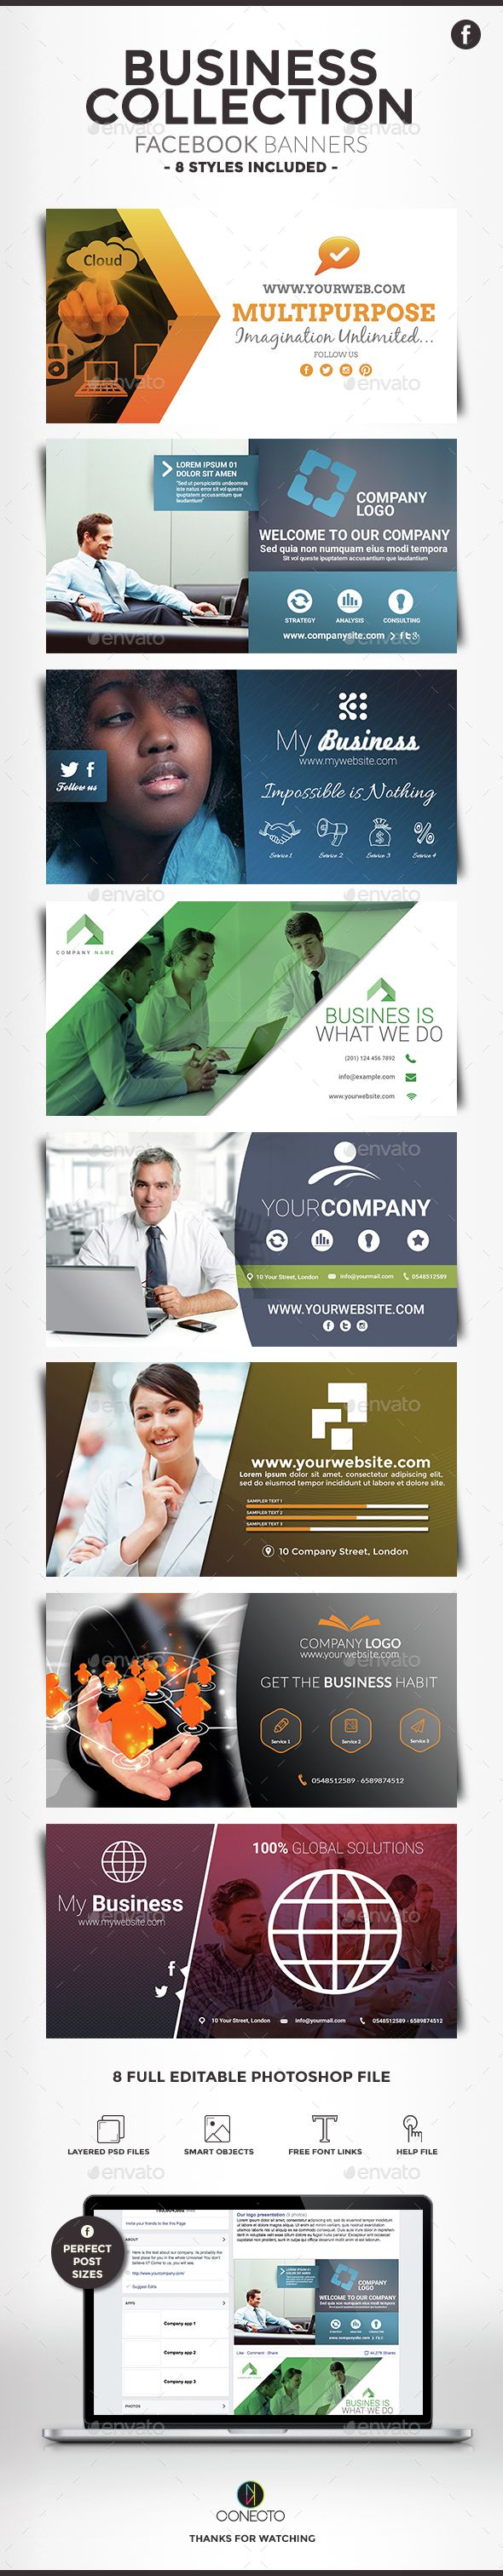 Facebook Banners - Business Collection — Photoshop PSD #corporate #profile • Available here → https://graphicriver.net/item/facebook-banners-business-collection/15001510?ref=pxcr